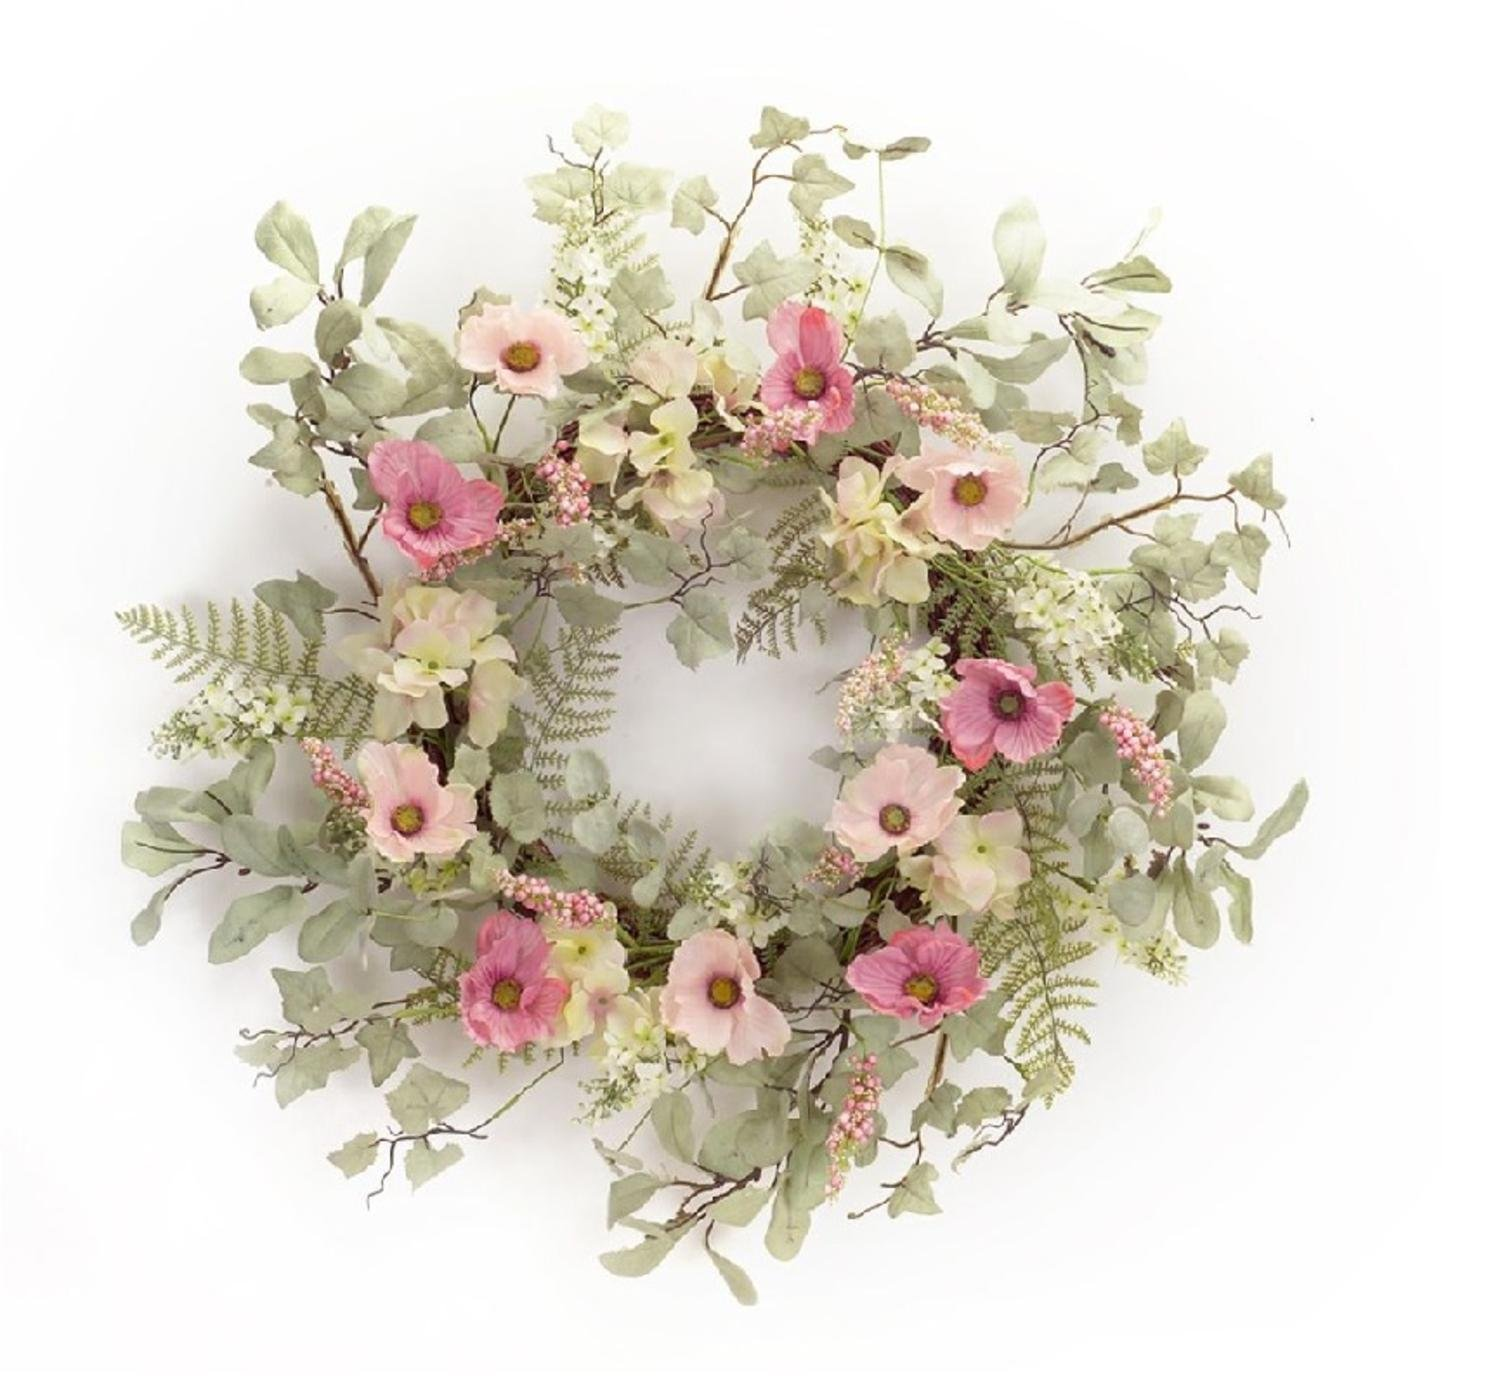 Pack of 2 Pastel Poppy and Hydrangea Wreaths with Foliage and Twigs 25'' - Unlit